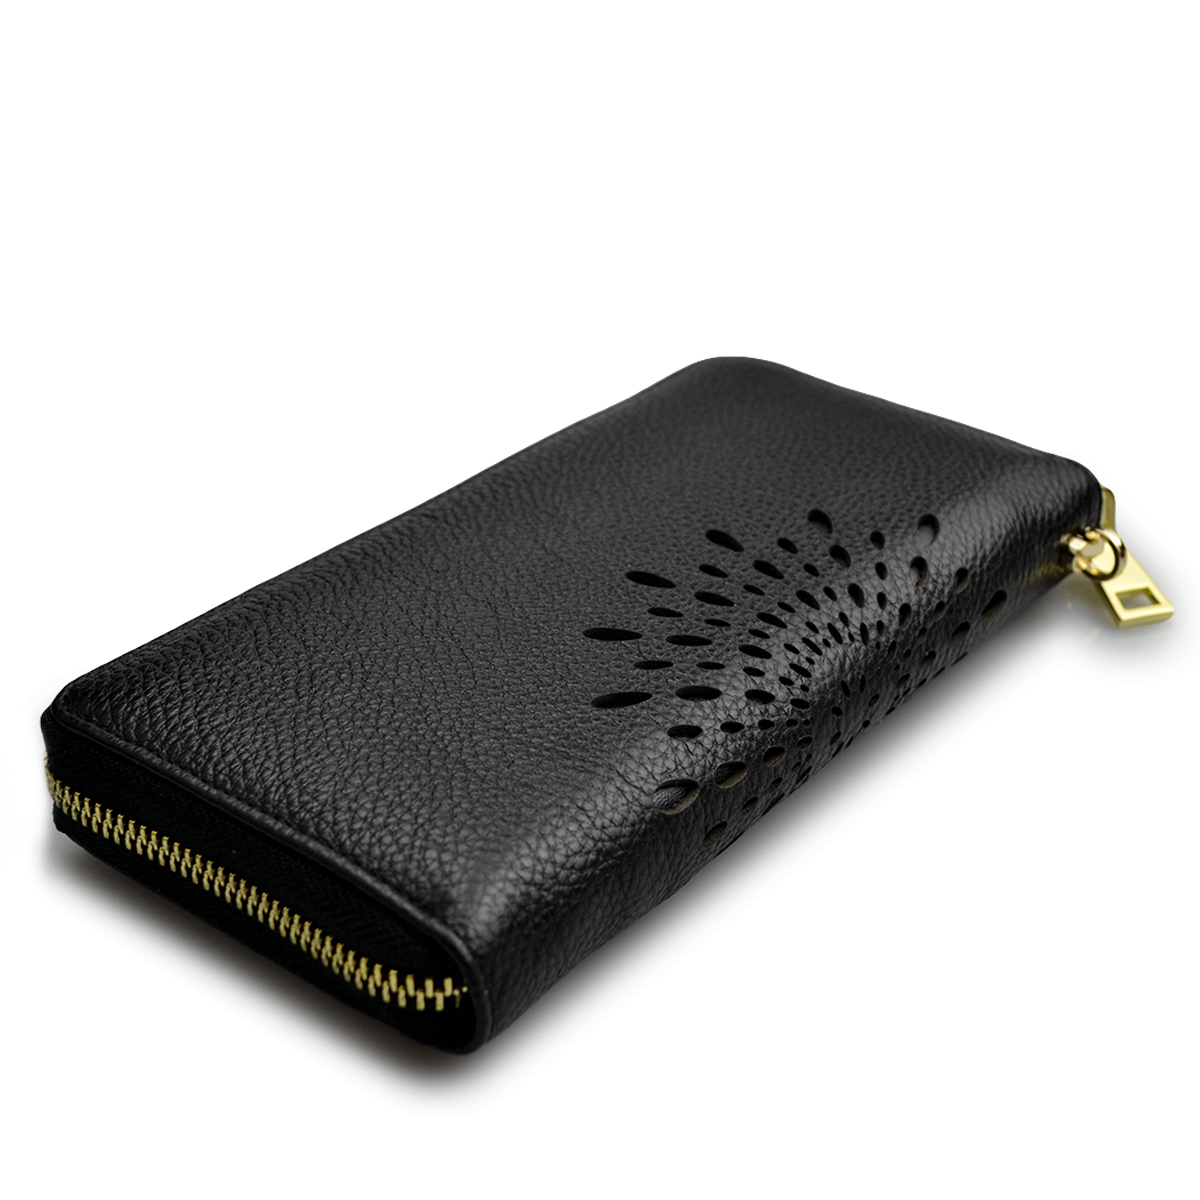 2018 Real Genuine Leather Women Wallets Brand Design High Quality Cell phone Card Holder Long Lady Wallet Purse Clutch